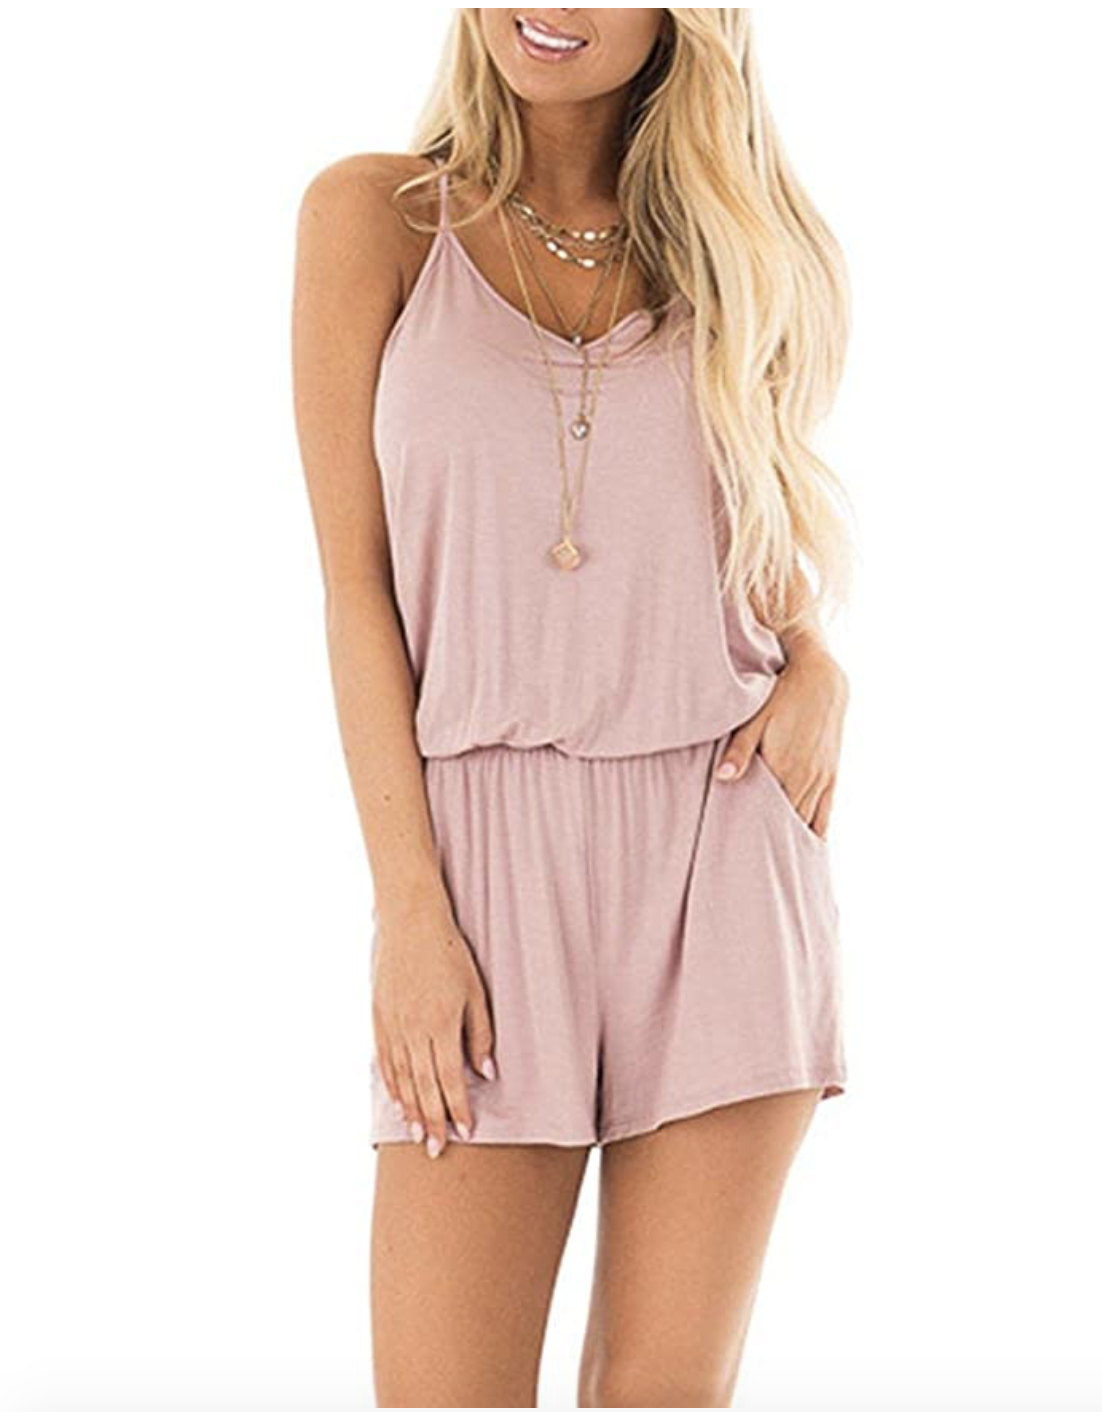 MISFAY Womens Summer Loose V Neck Spaghetti Strap Short Jumpsuit Rompers